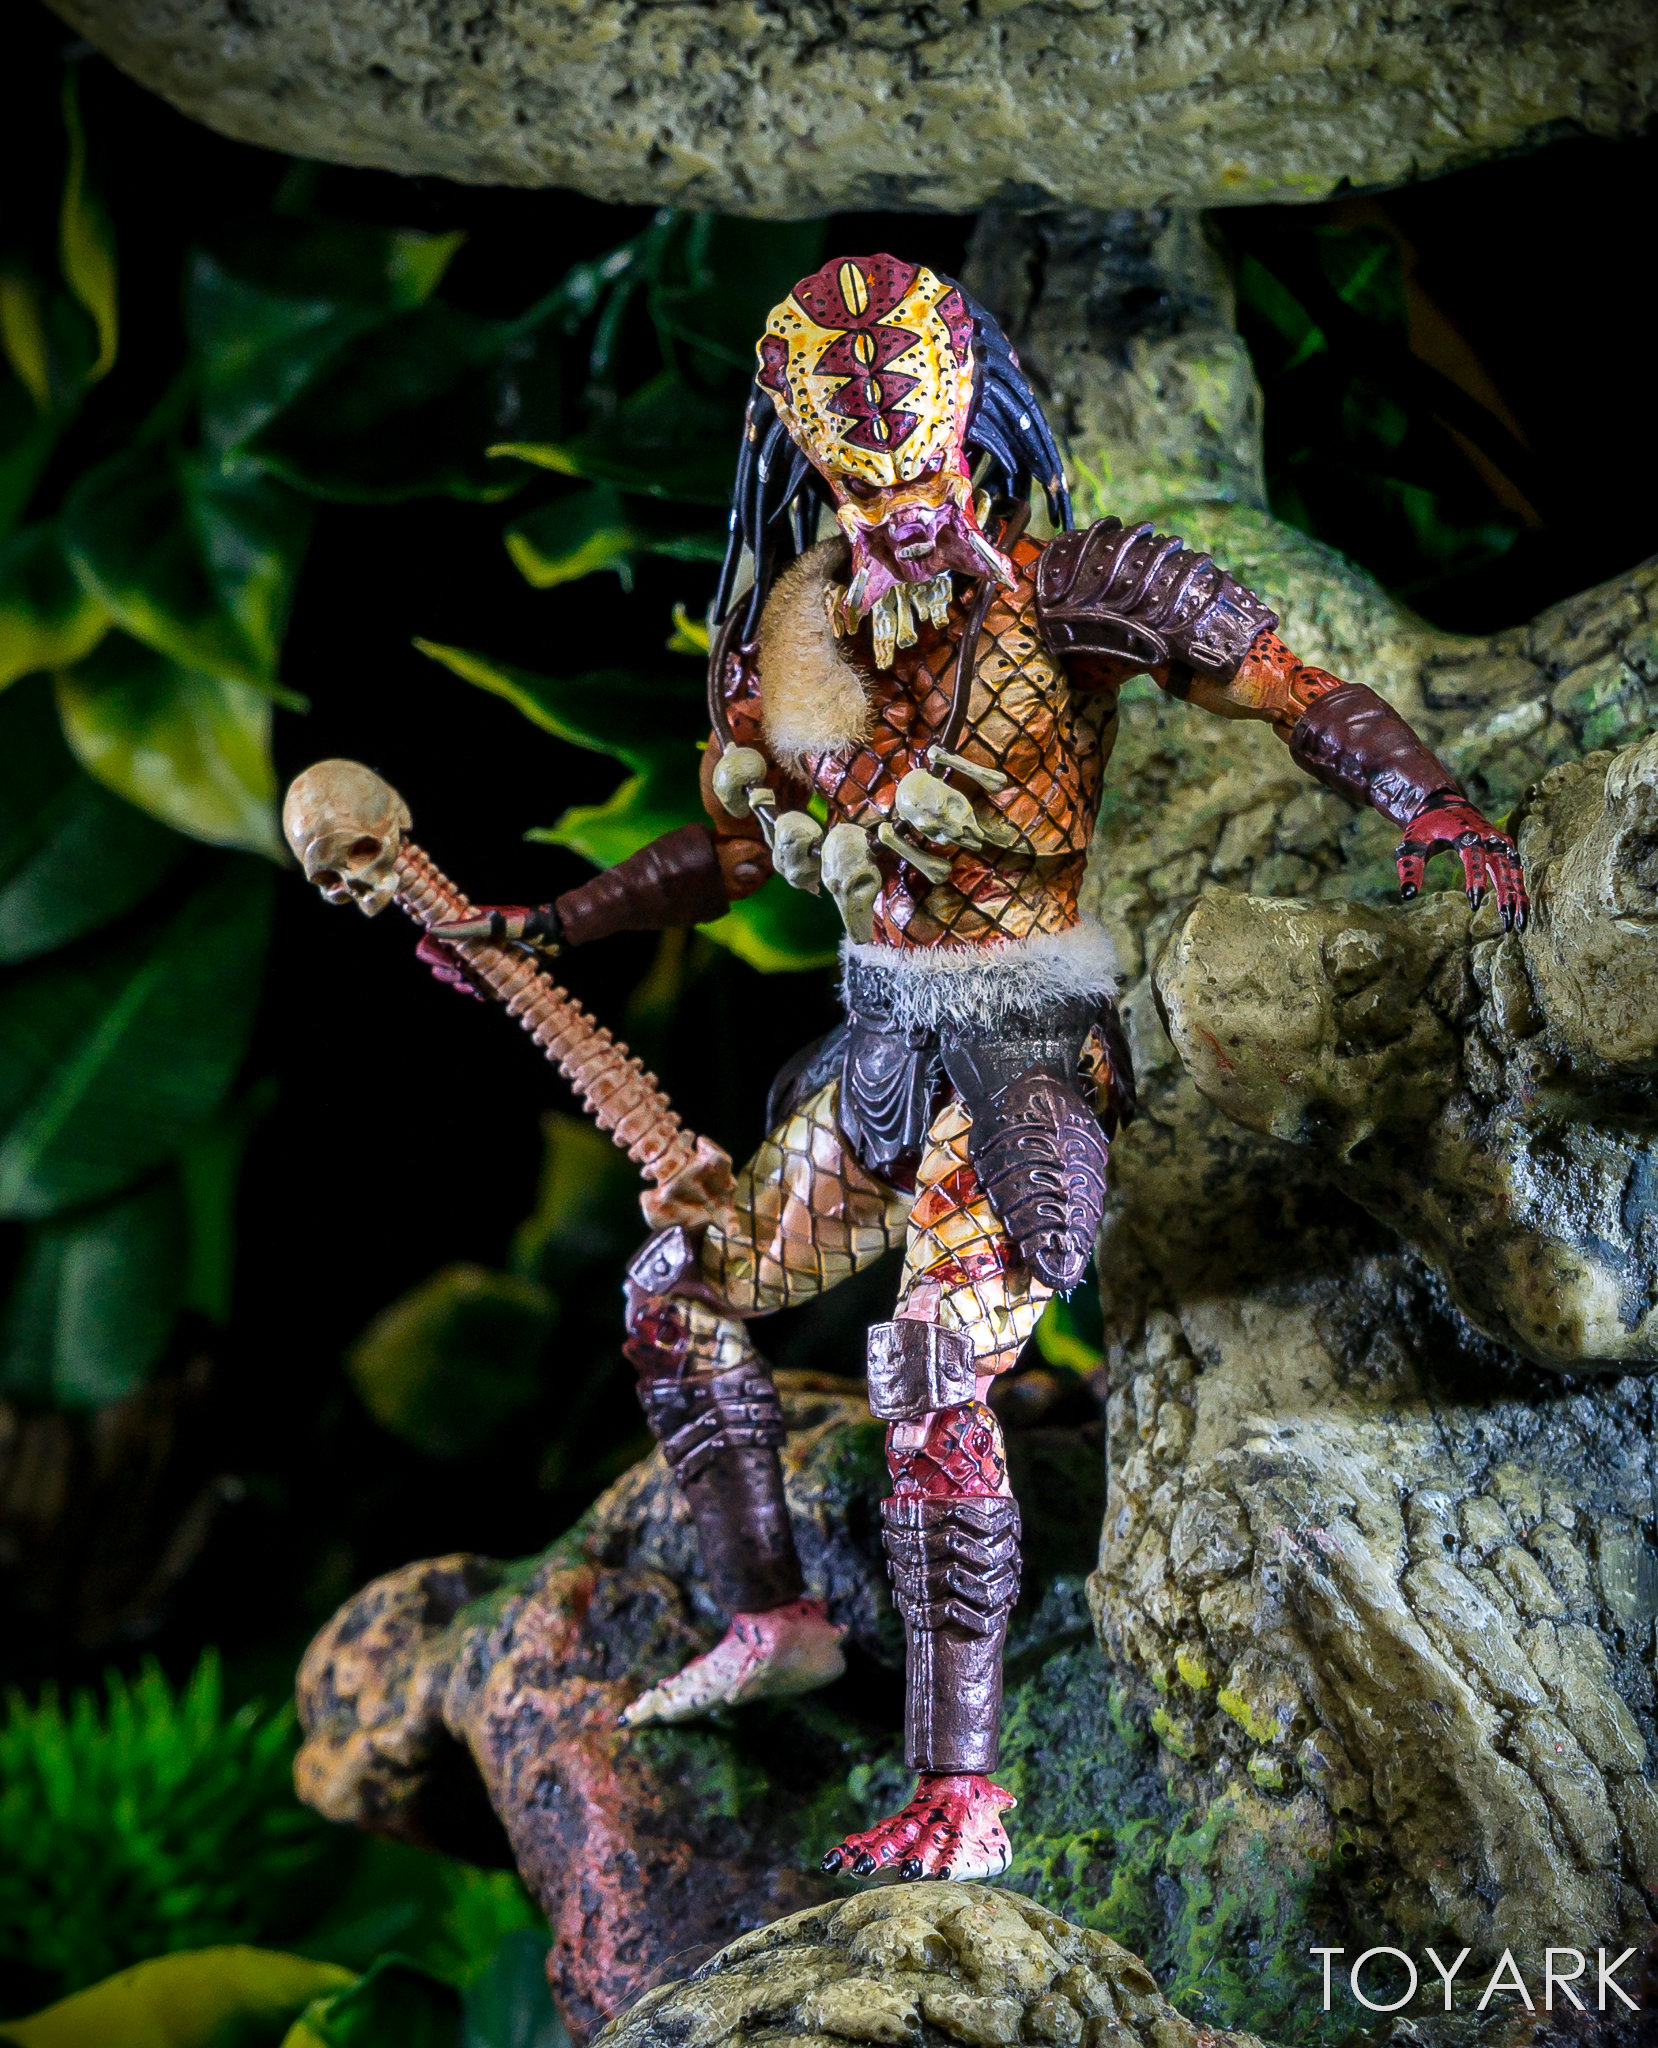 http://news.toyark.com/wp-content/uploads/sites/4/2018/03/Hiya-Predator-2-Figures-046.jpg